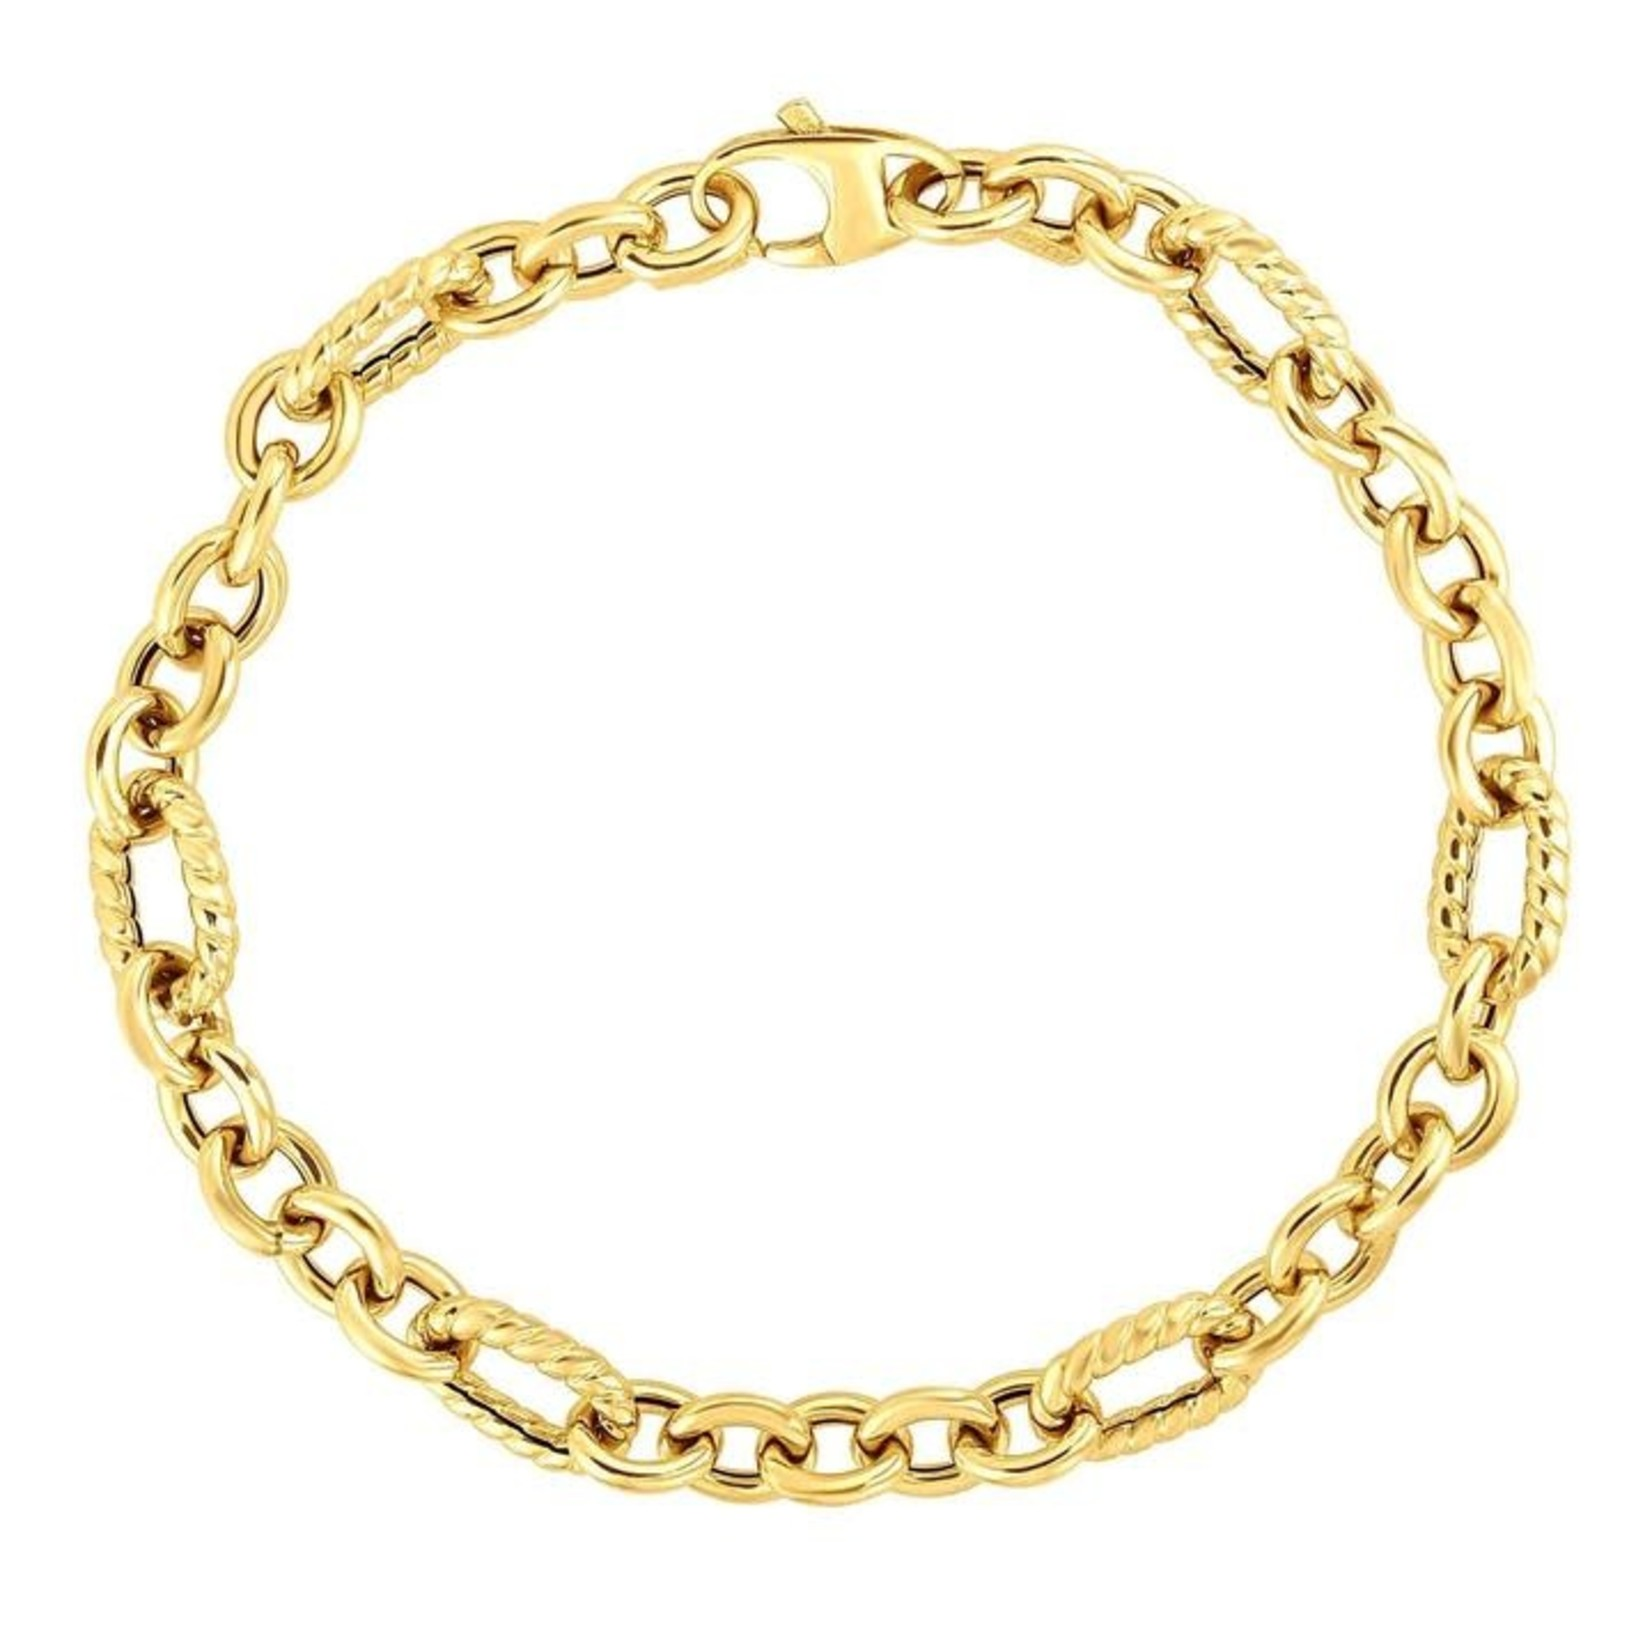 14K Yellow Gold Twisted Cable Link Bracelet